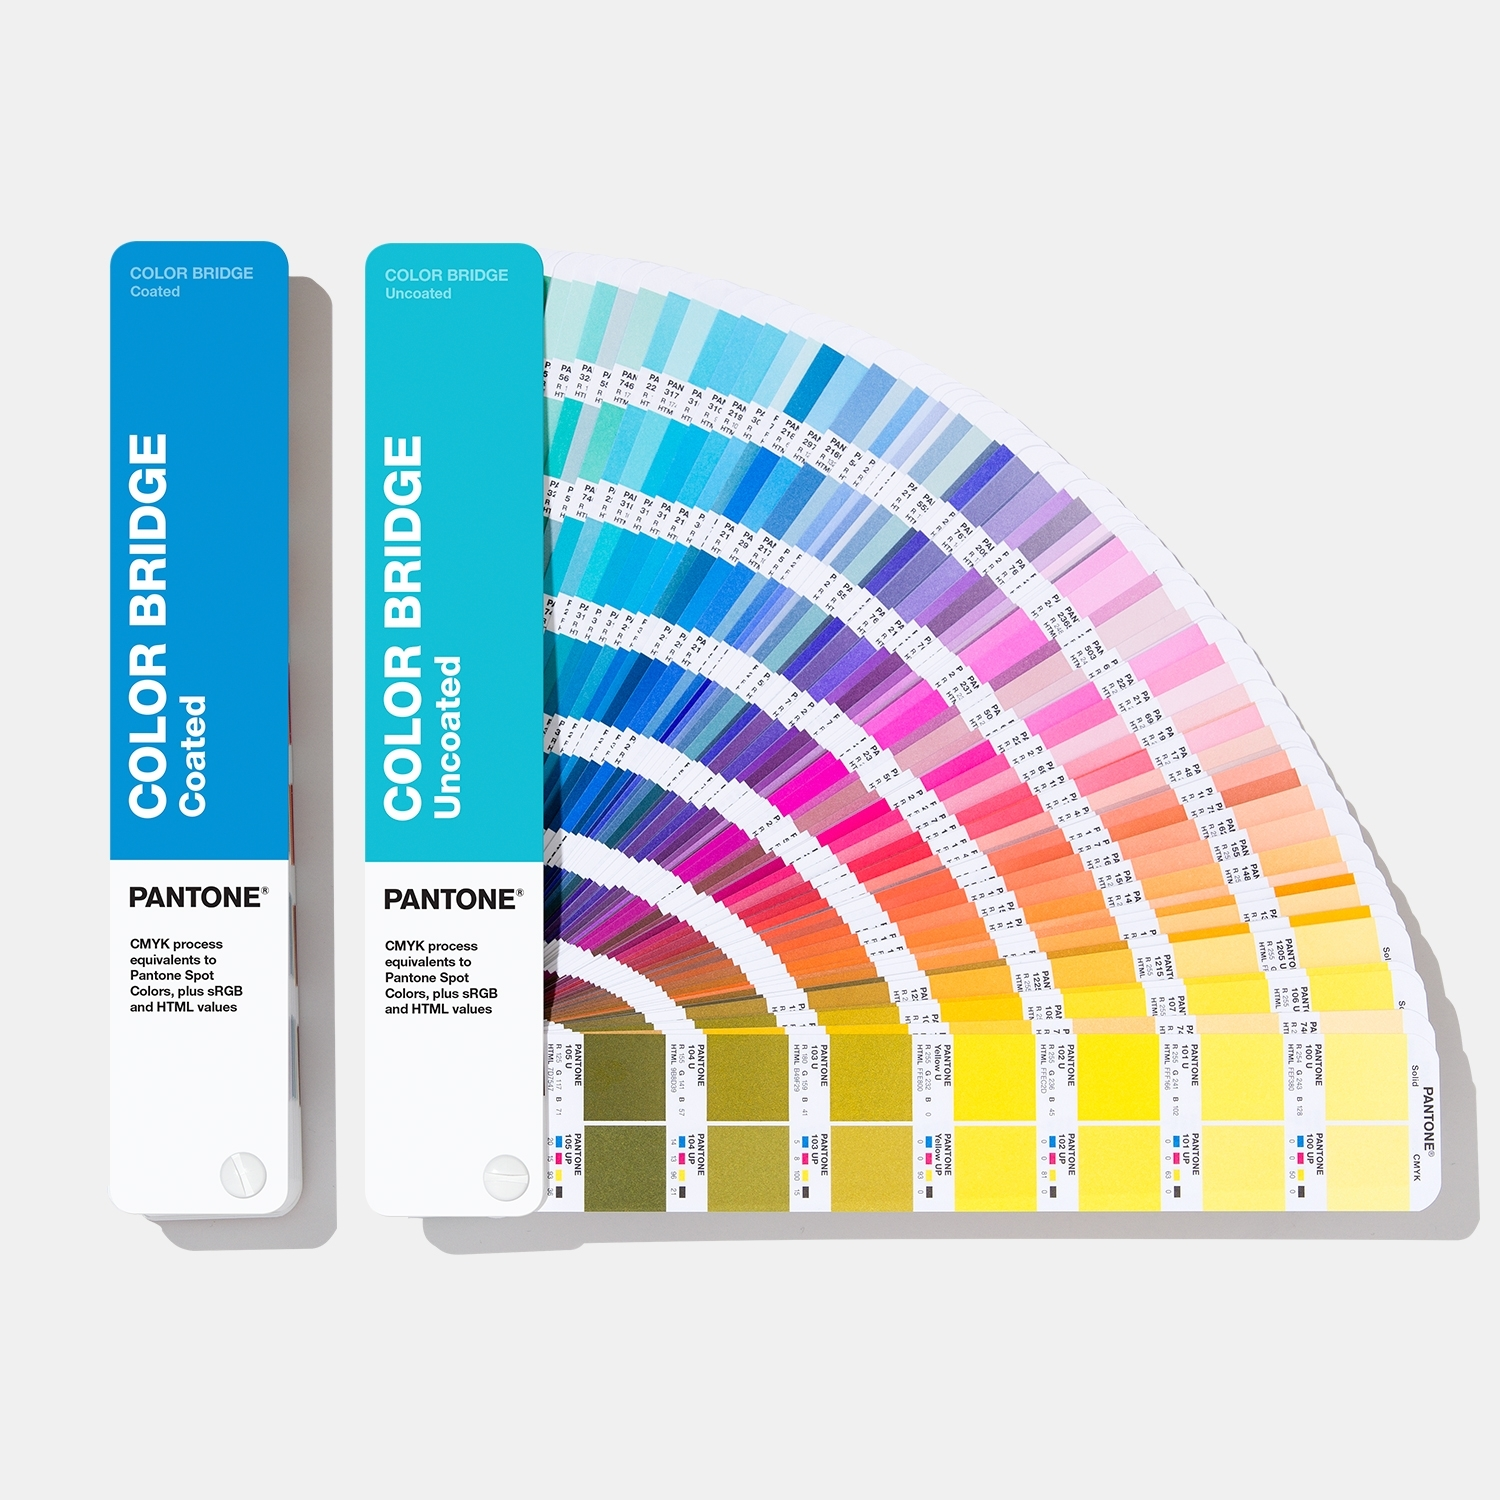 PANTONE COLOR BRIDGE COATED & UNCOATED Books featuring the art of Umberto Daina.